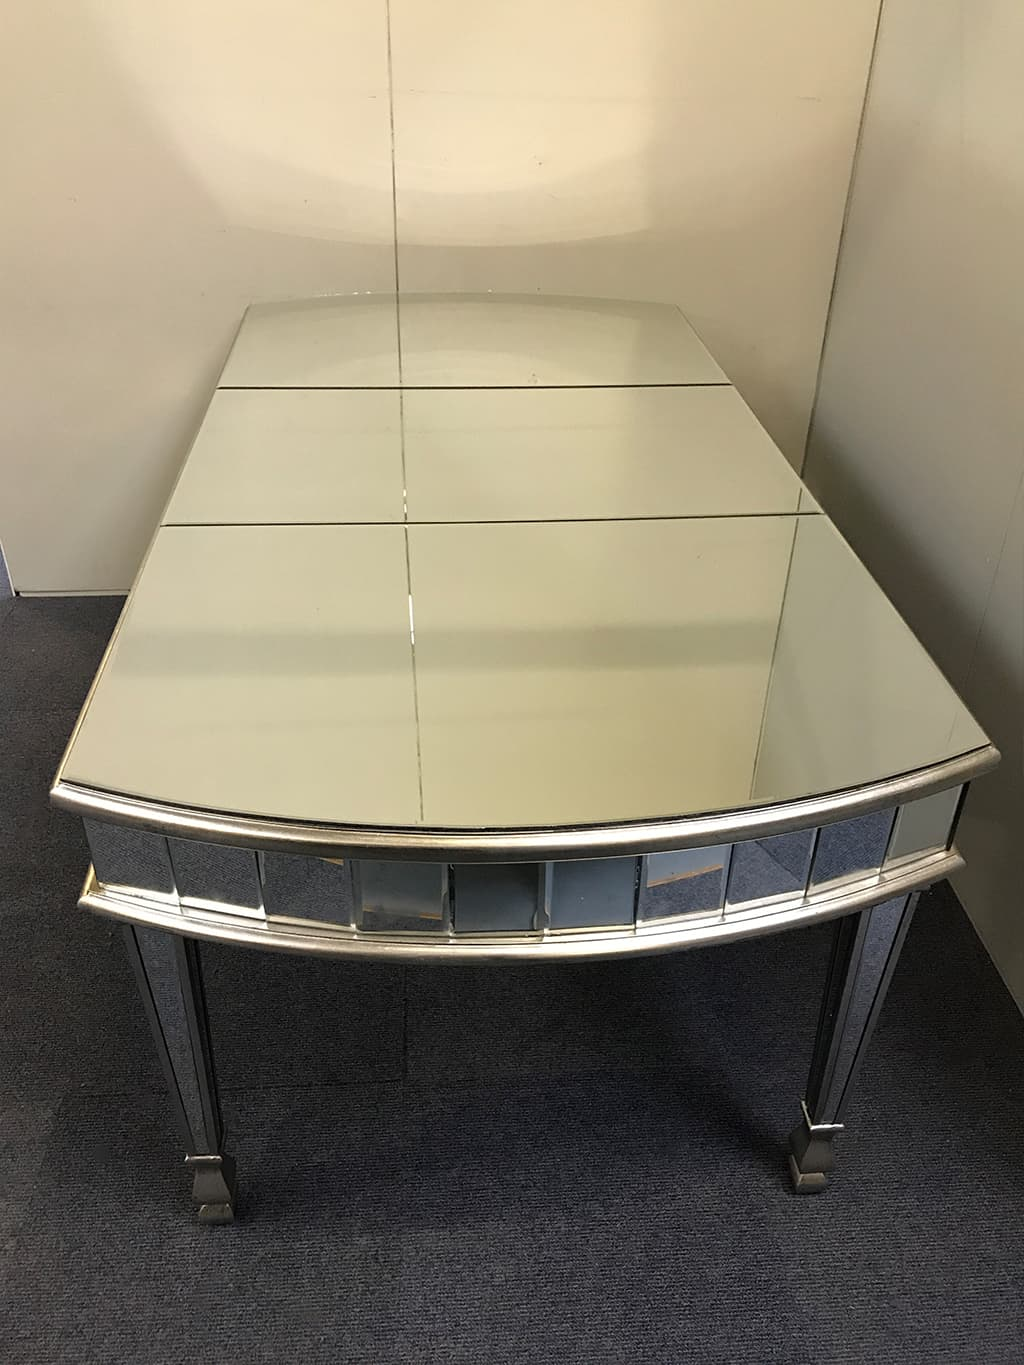 6 seater mirrored dining table with bowed ends, bordered with 9cm bevelled mirror strips, edged with wood finished in an antiqued silver finish, wood and mirror